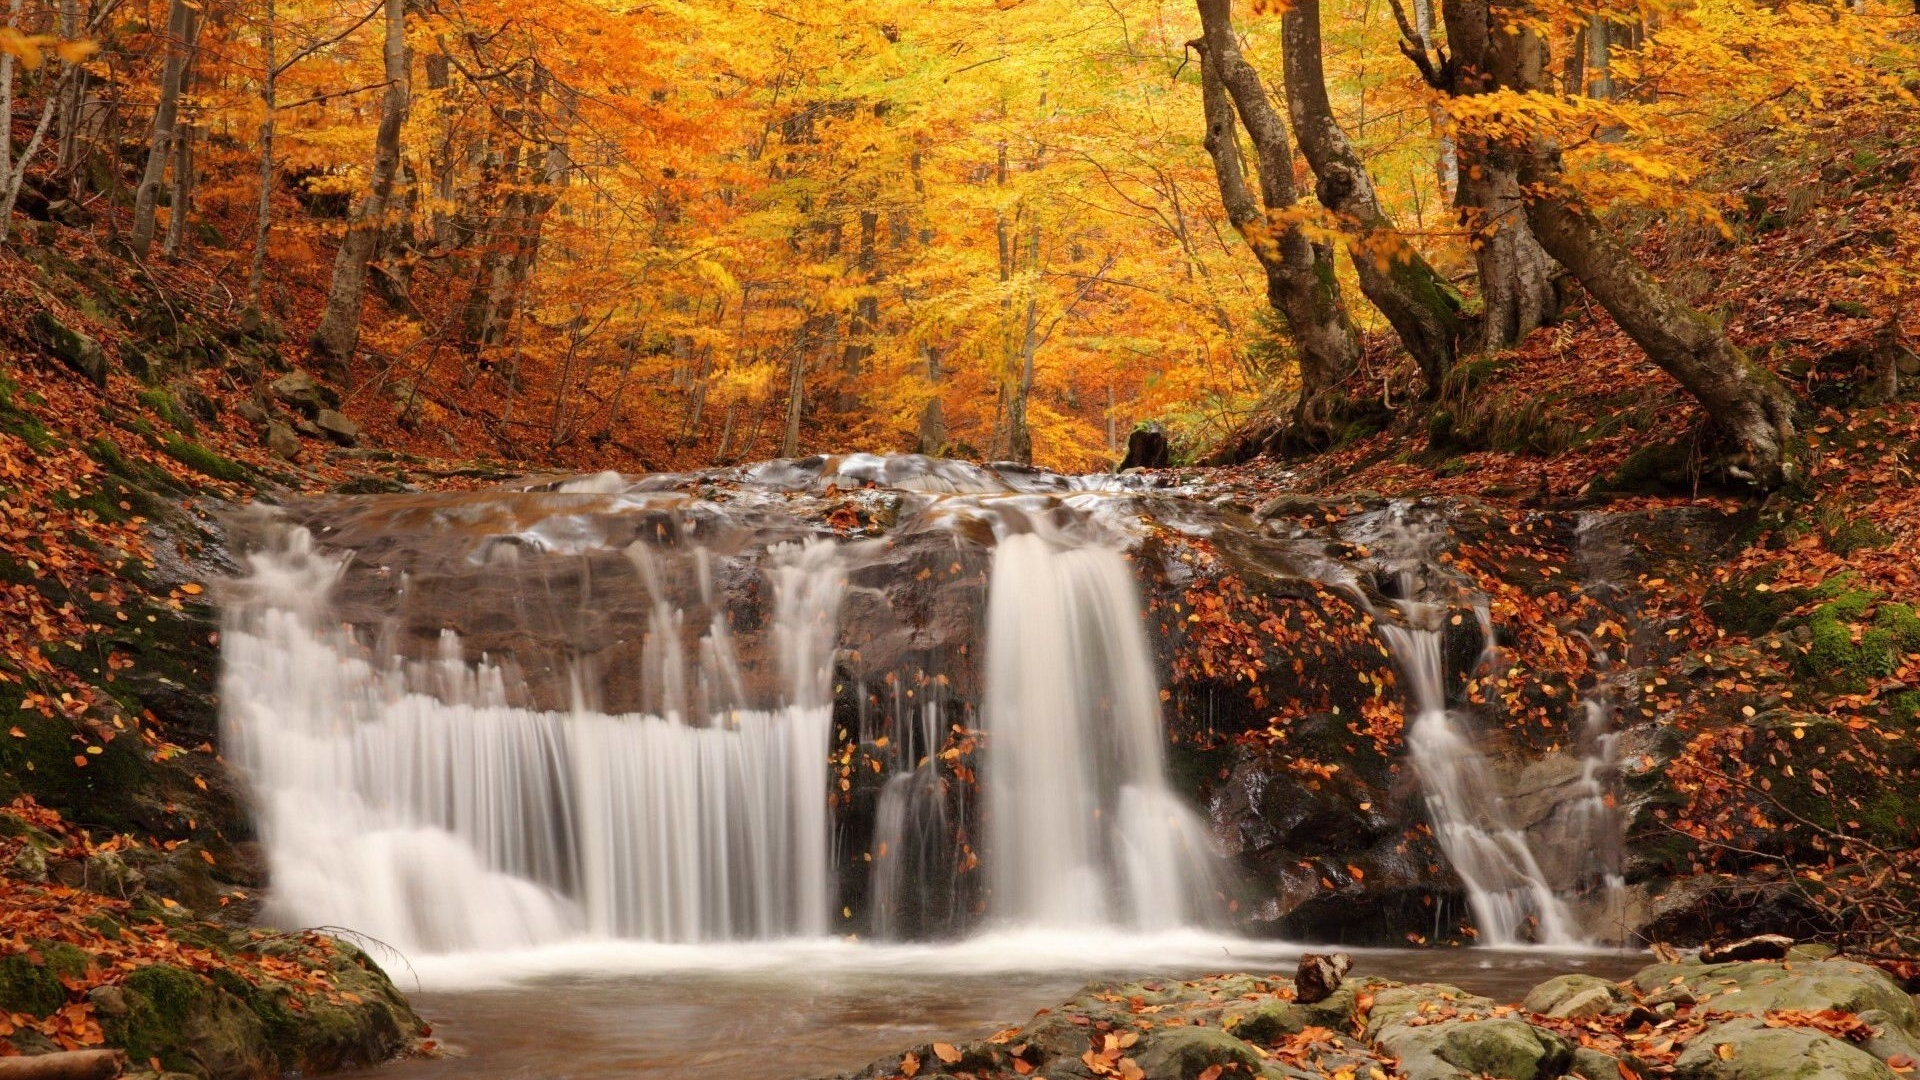 landscapes nature trees forest autumn fall seasons waterfall